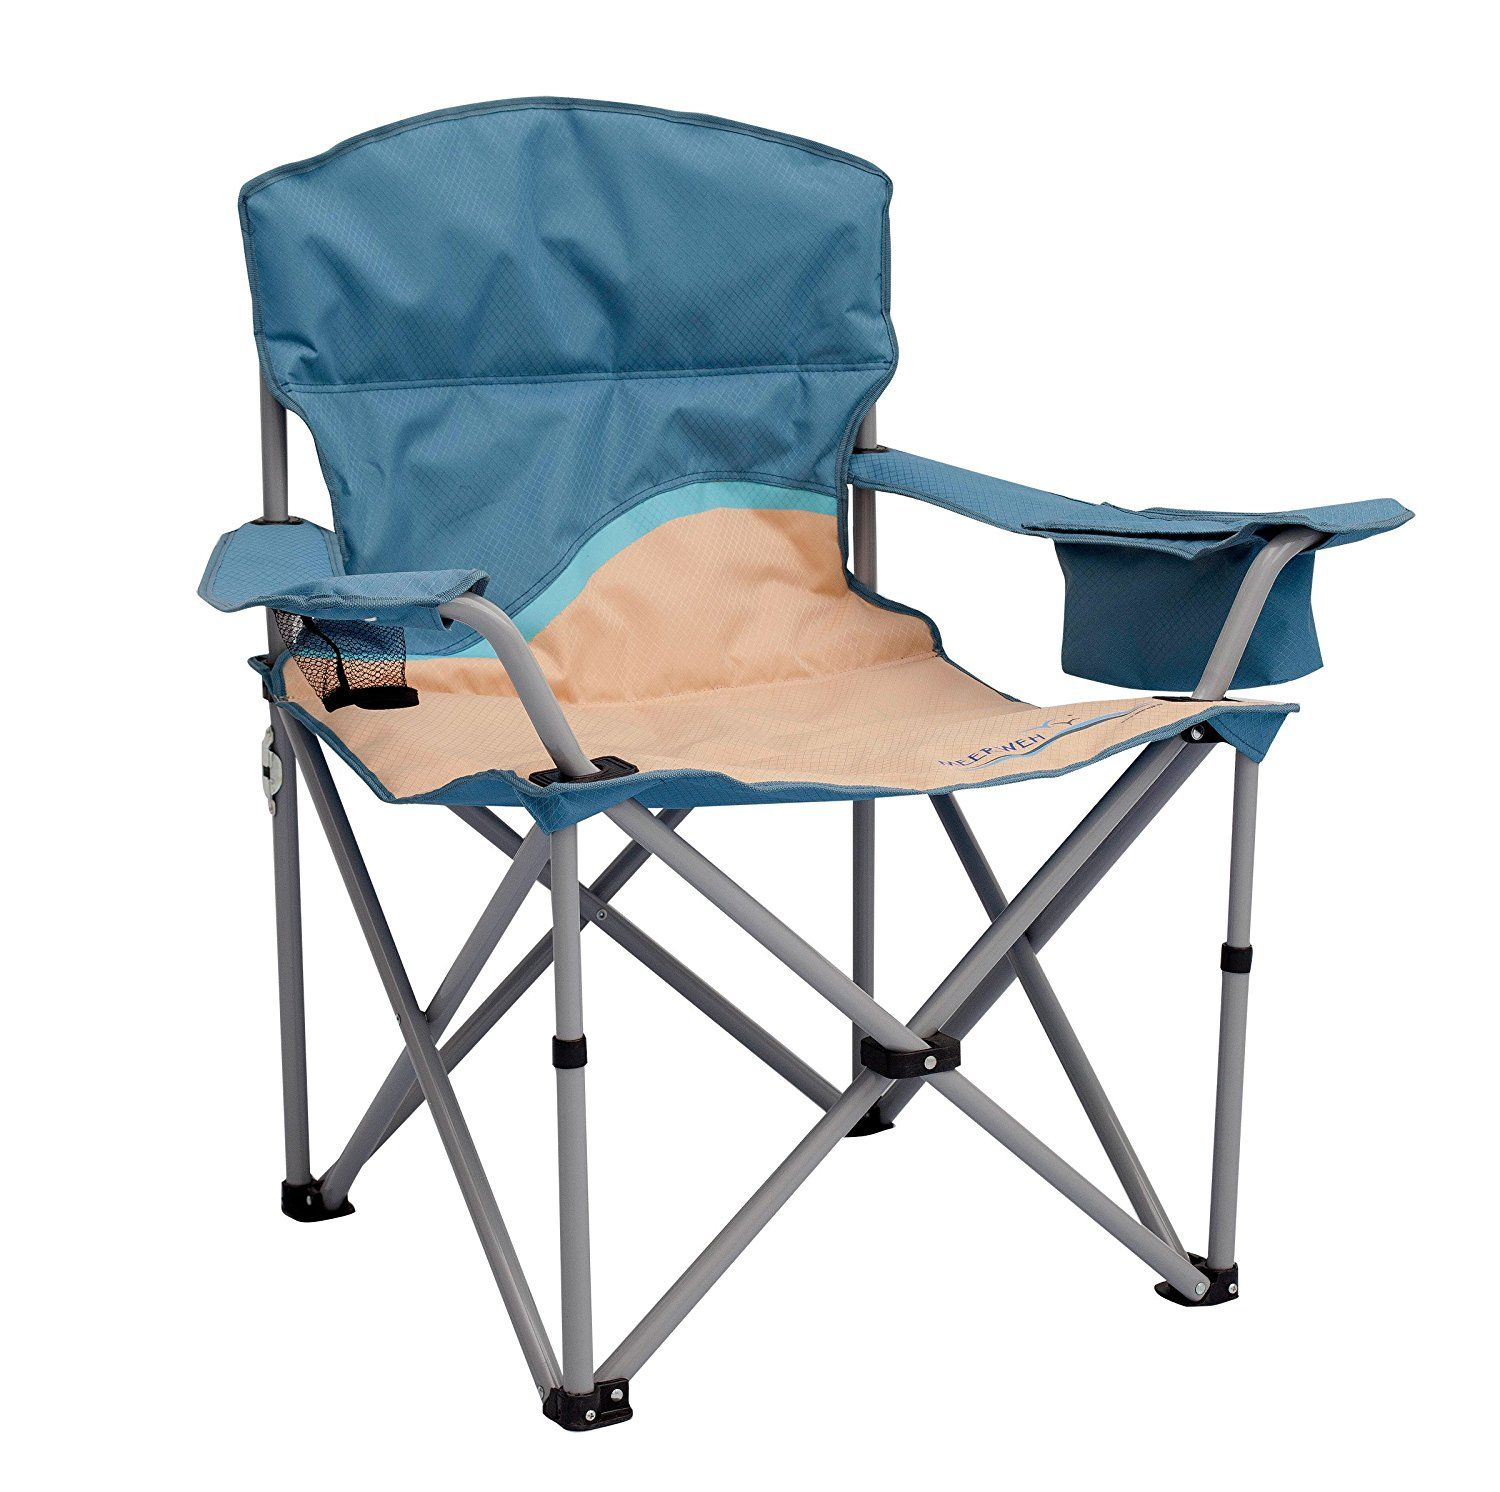 Meerweh 74046 Heavy Duty Folding Chair with Drink Holder